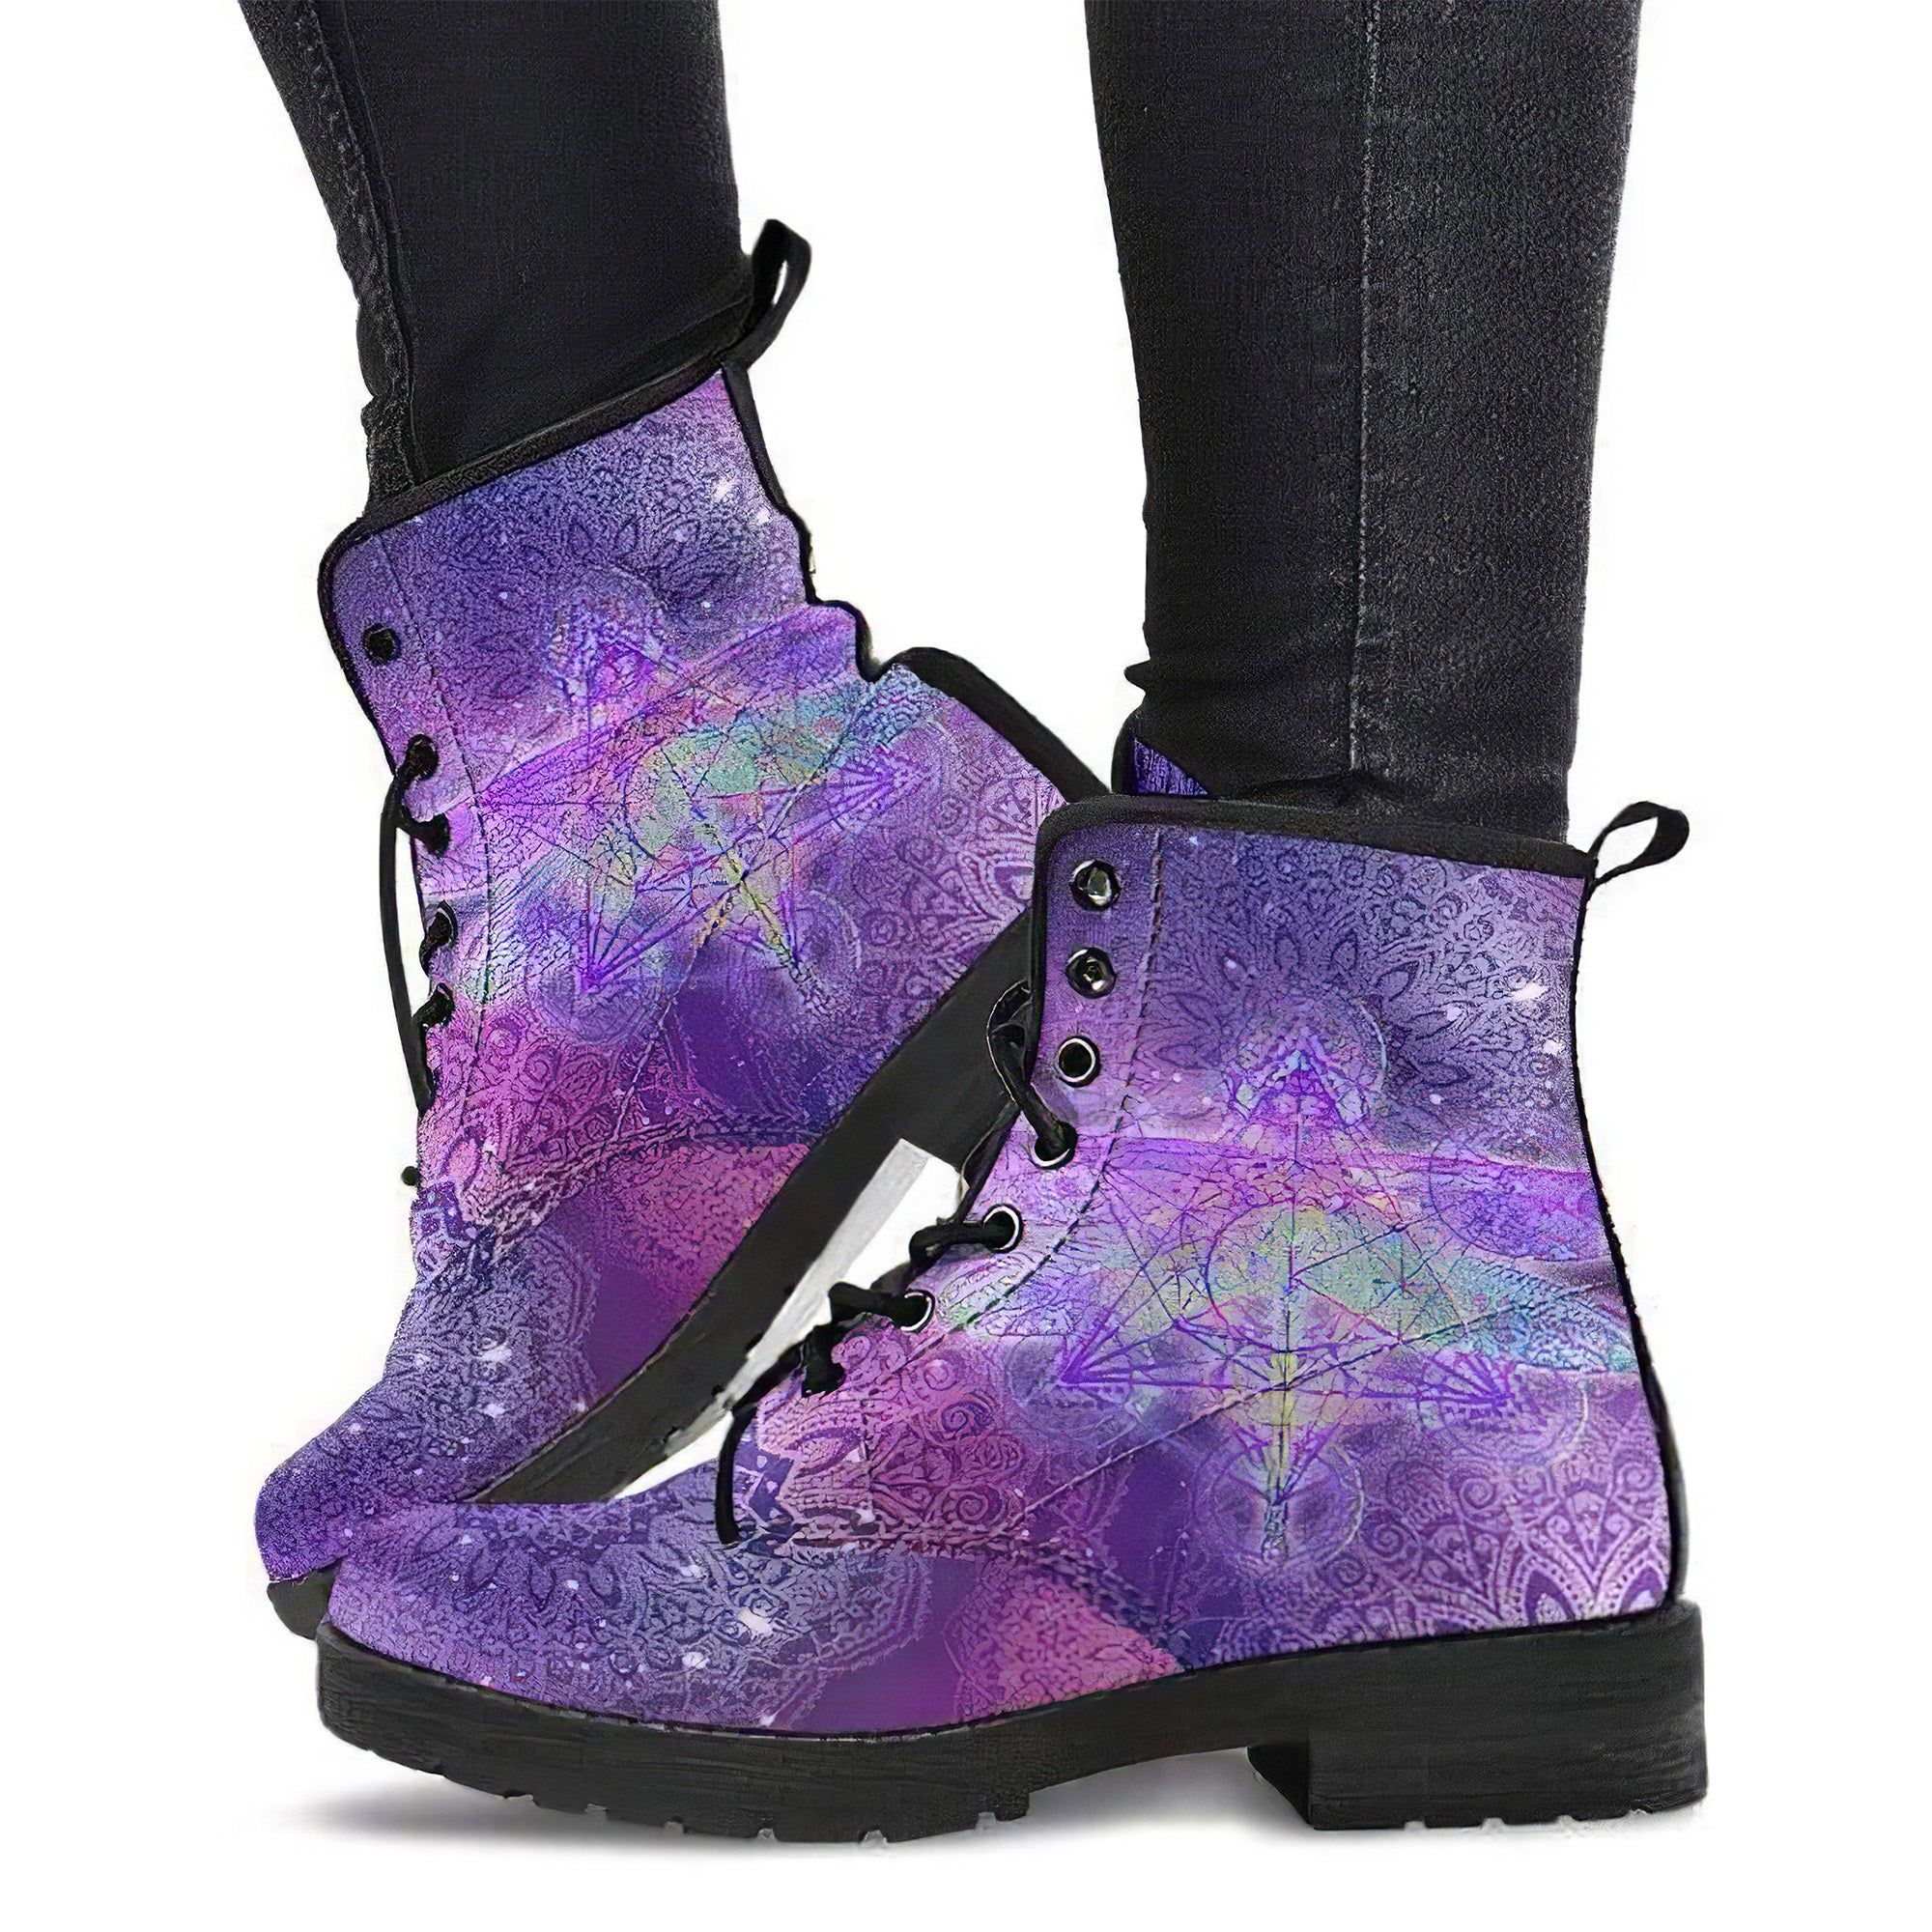 Details about  /Mandala Dragonfly Chakra Color Handcrafted Women/'s Vegan-Friendly Leather Boots